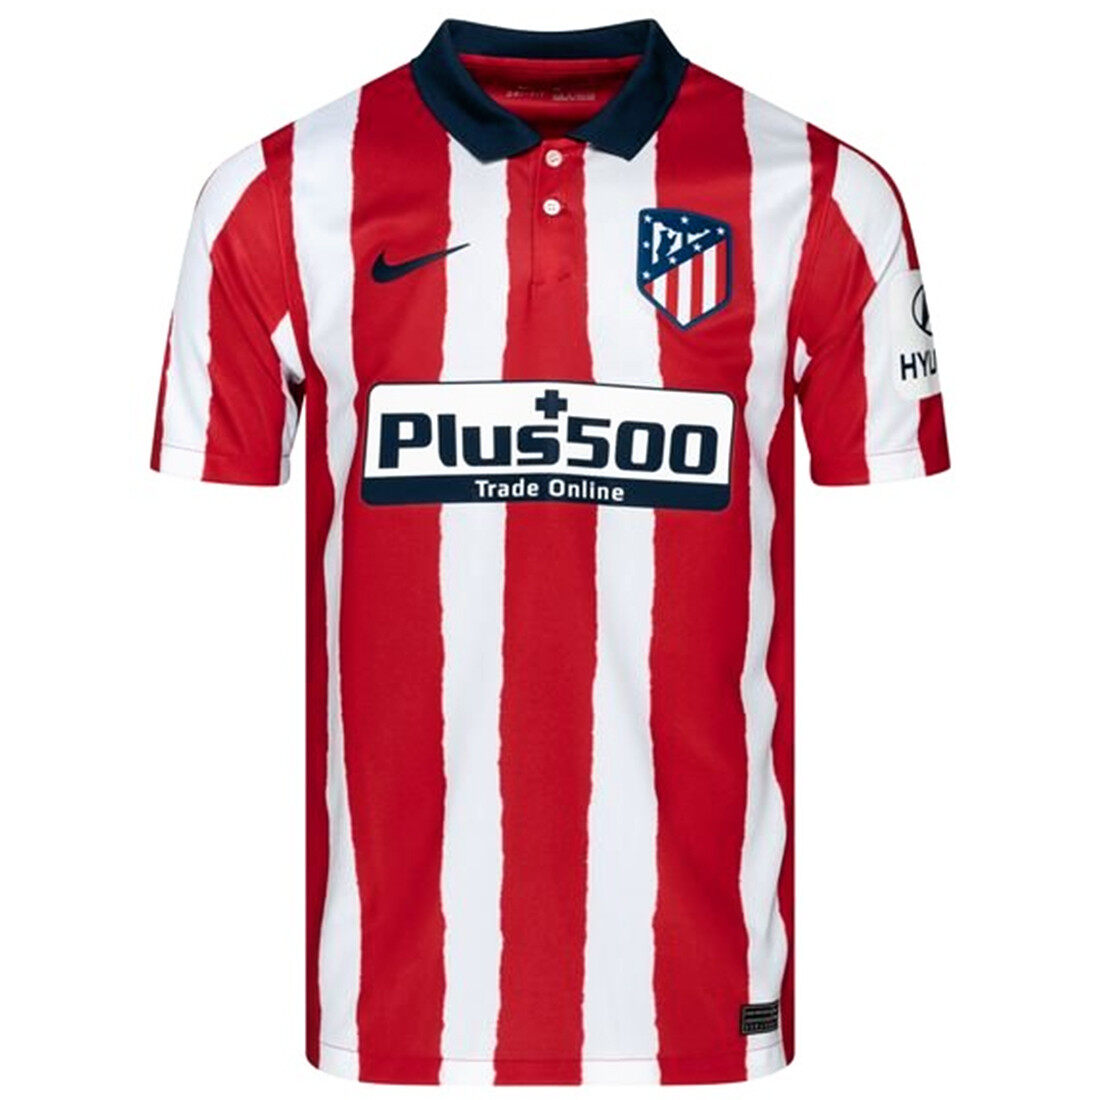 Atletico Madrid Jersey Best Price In Singapore Lazada Sg